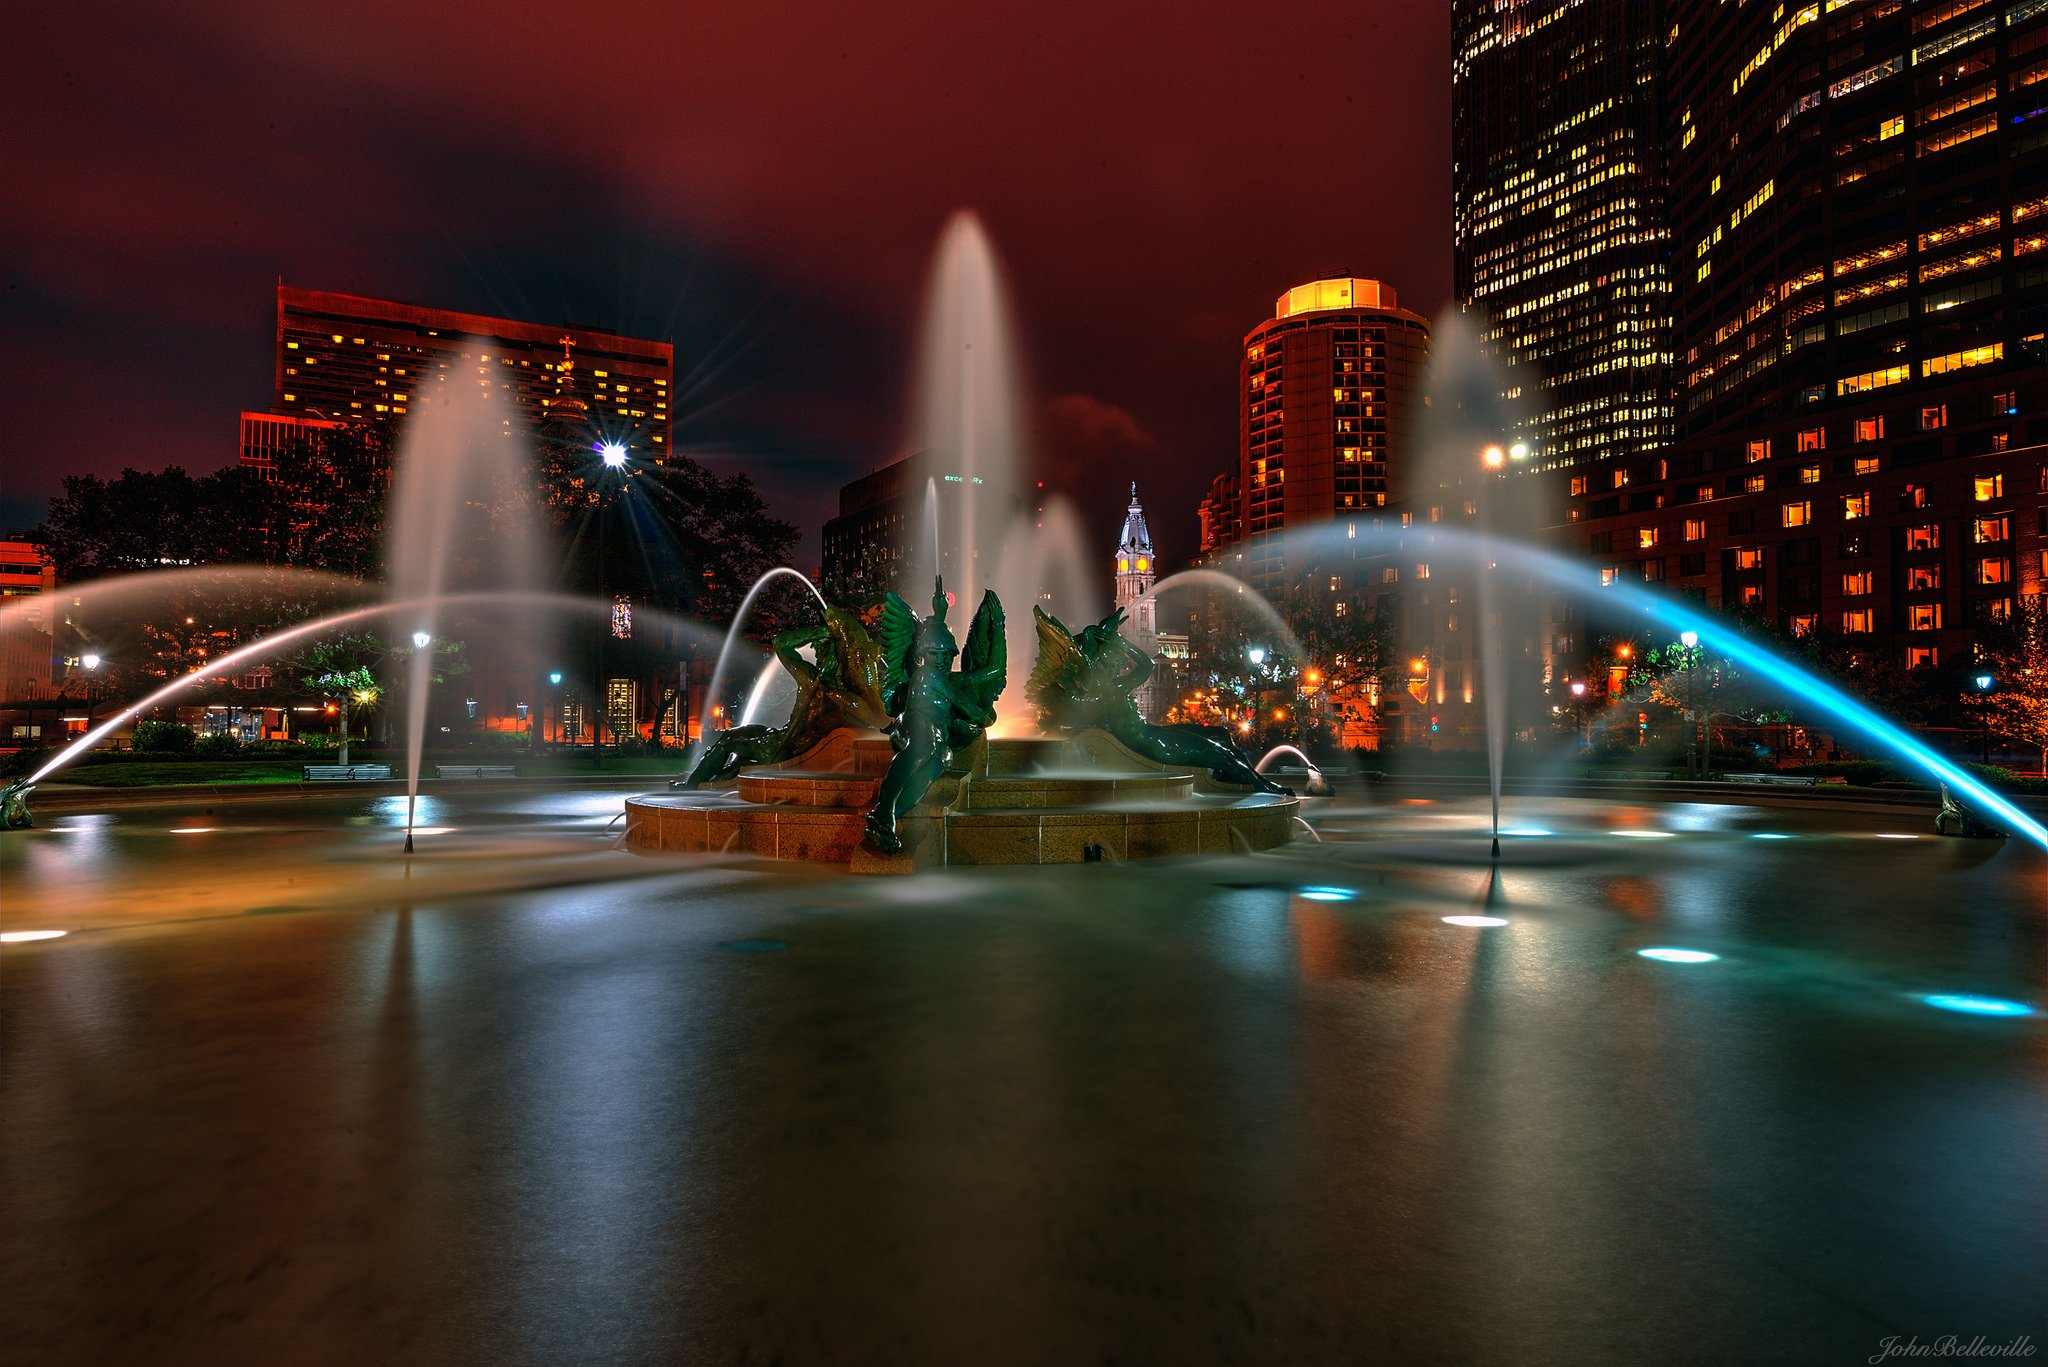 architecture bridges buildings cities City Downtown Philadelphia Pennsylvania Night offices storehouses stores texas towers USA Keystone-State